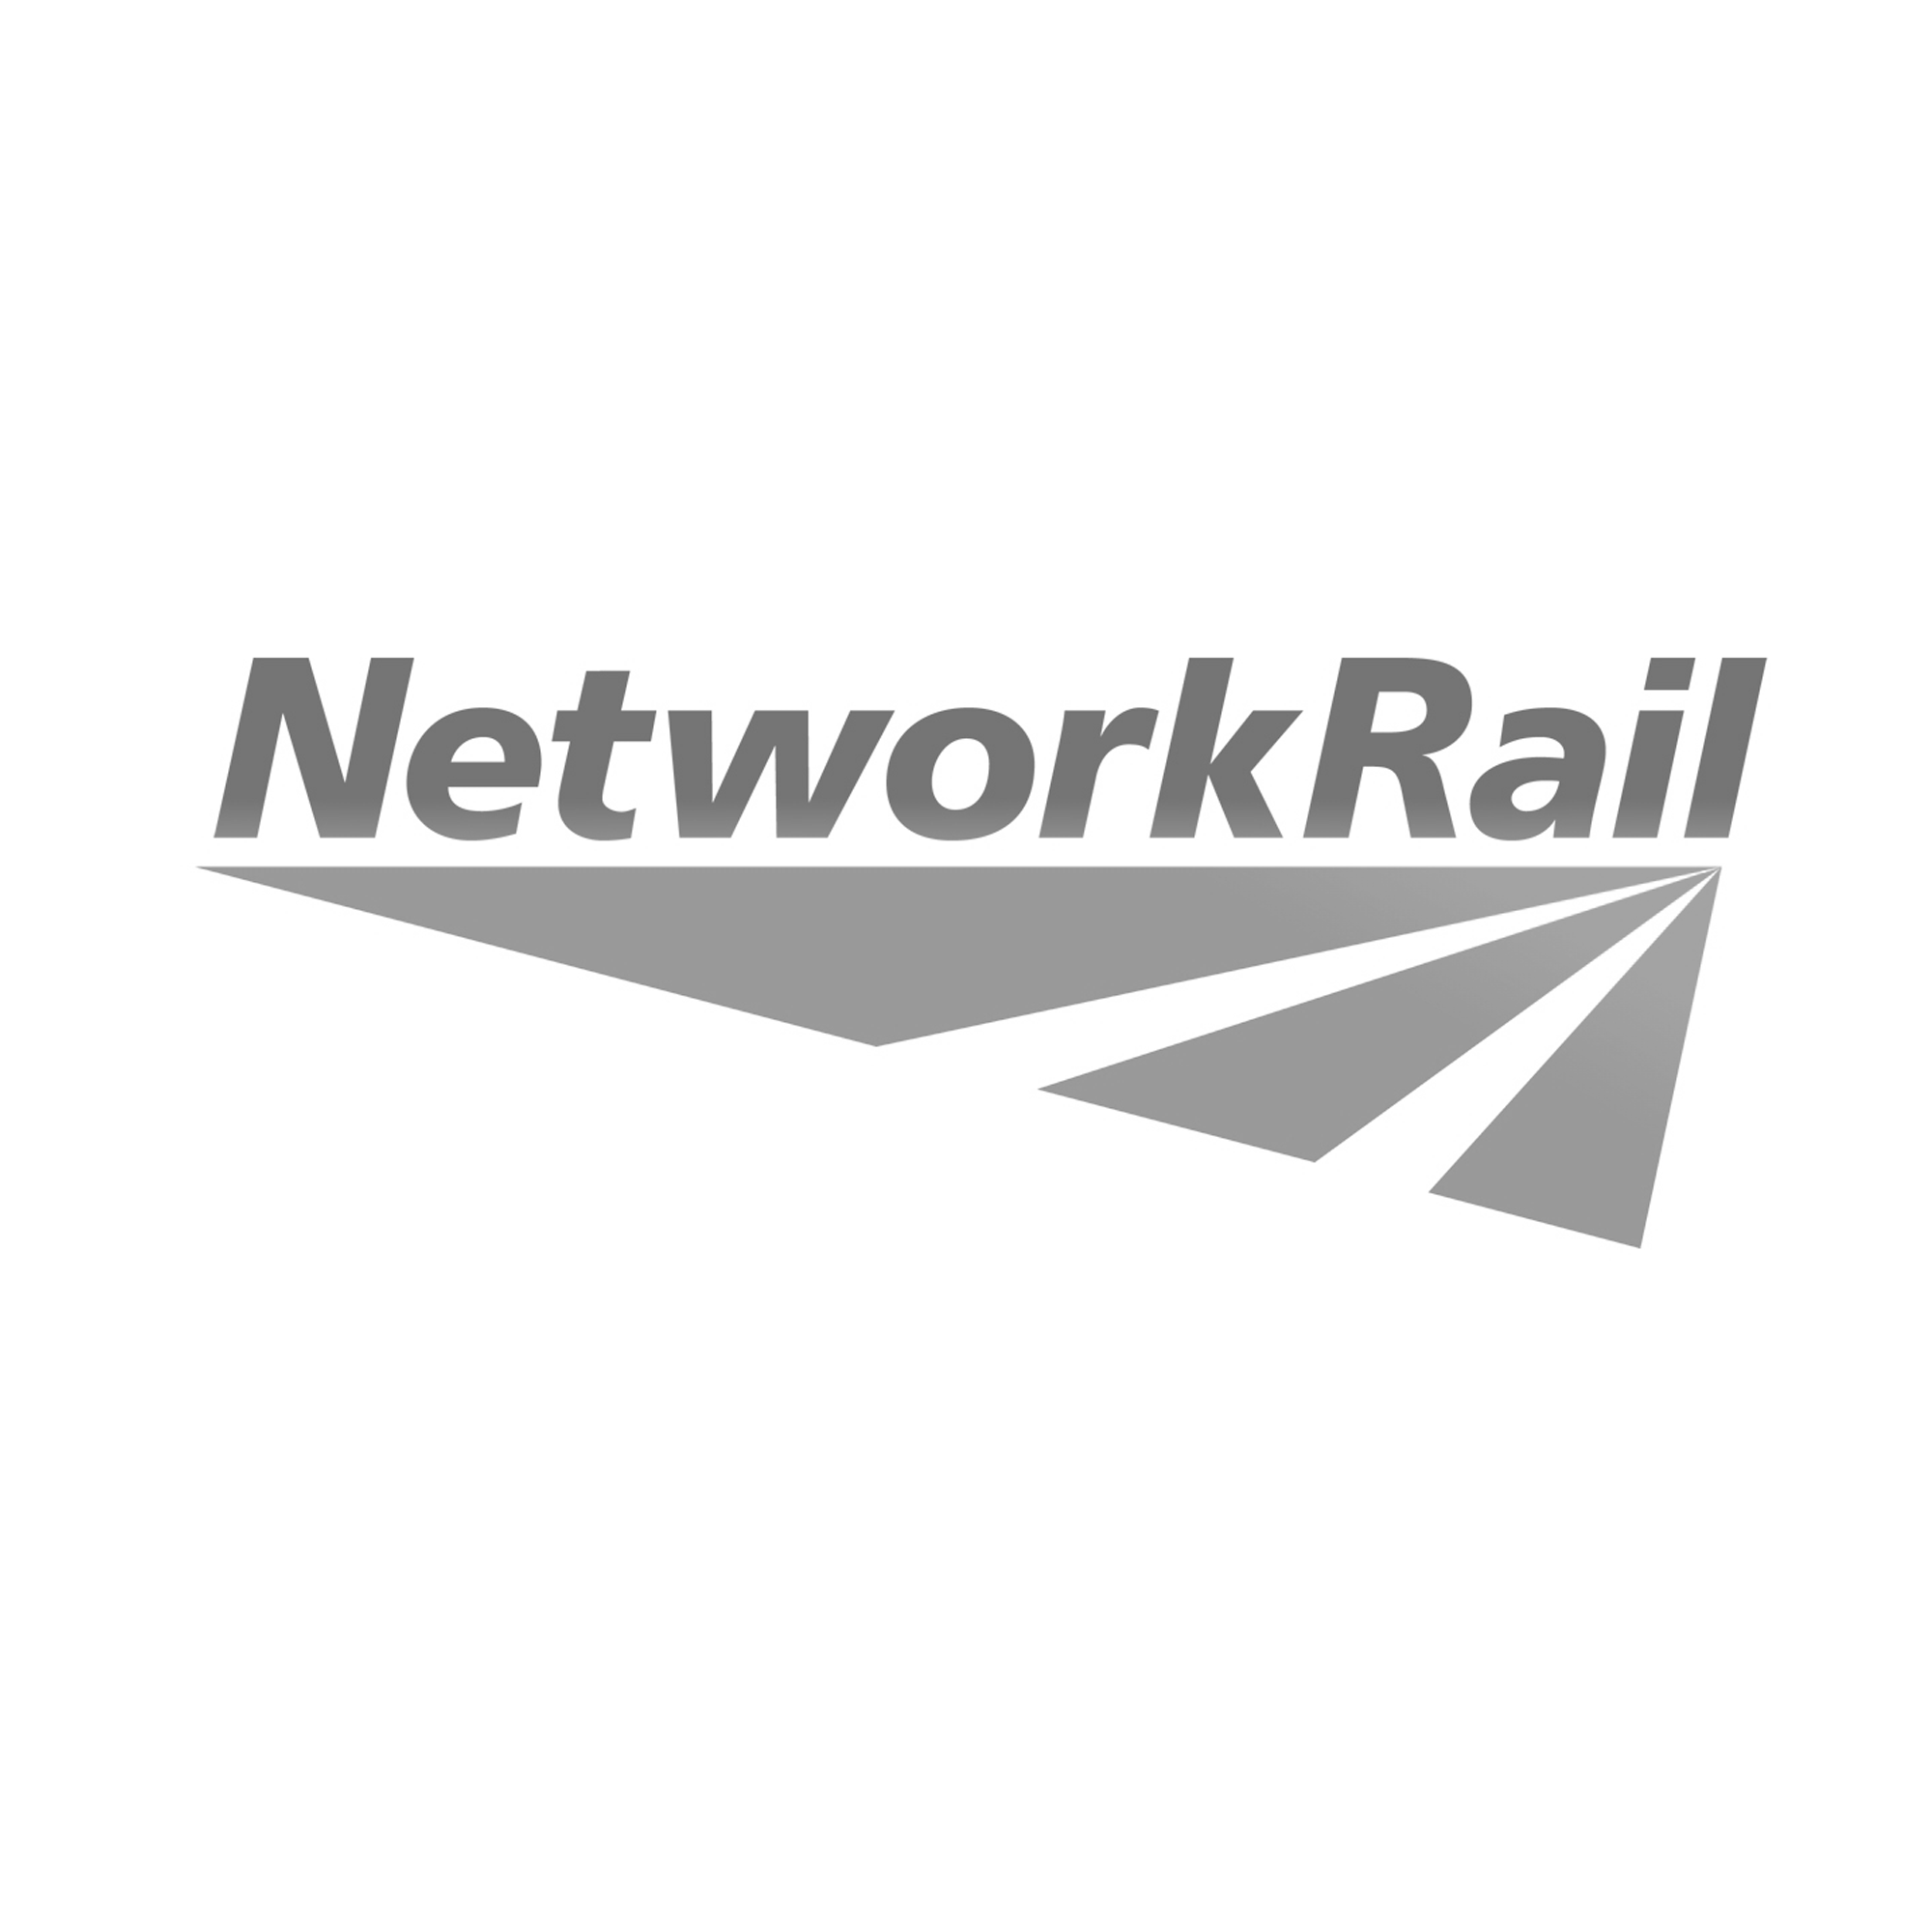 network rail logo black and white.png